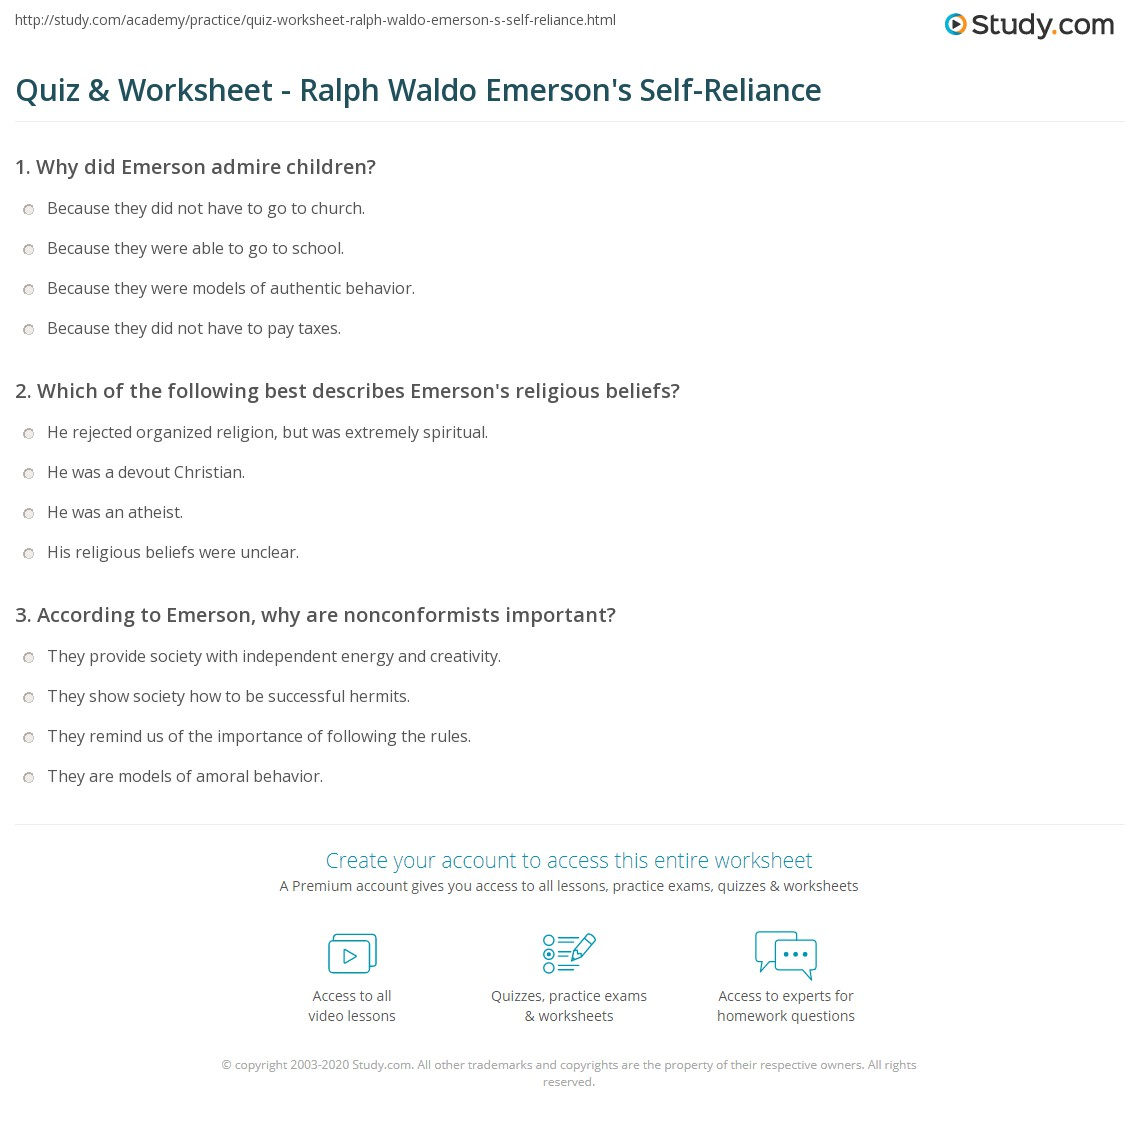 quiz worksheet ralph waldo emerson s self reliance com print self reliance ralph waldo emerson s transcendental essay worksheet